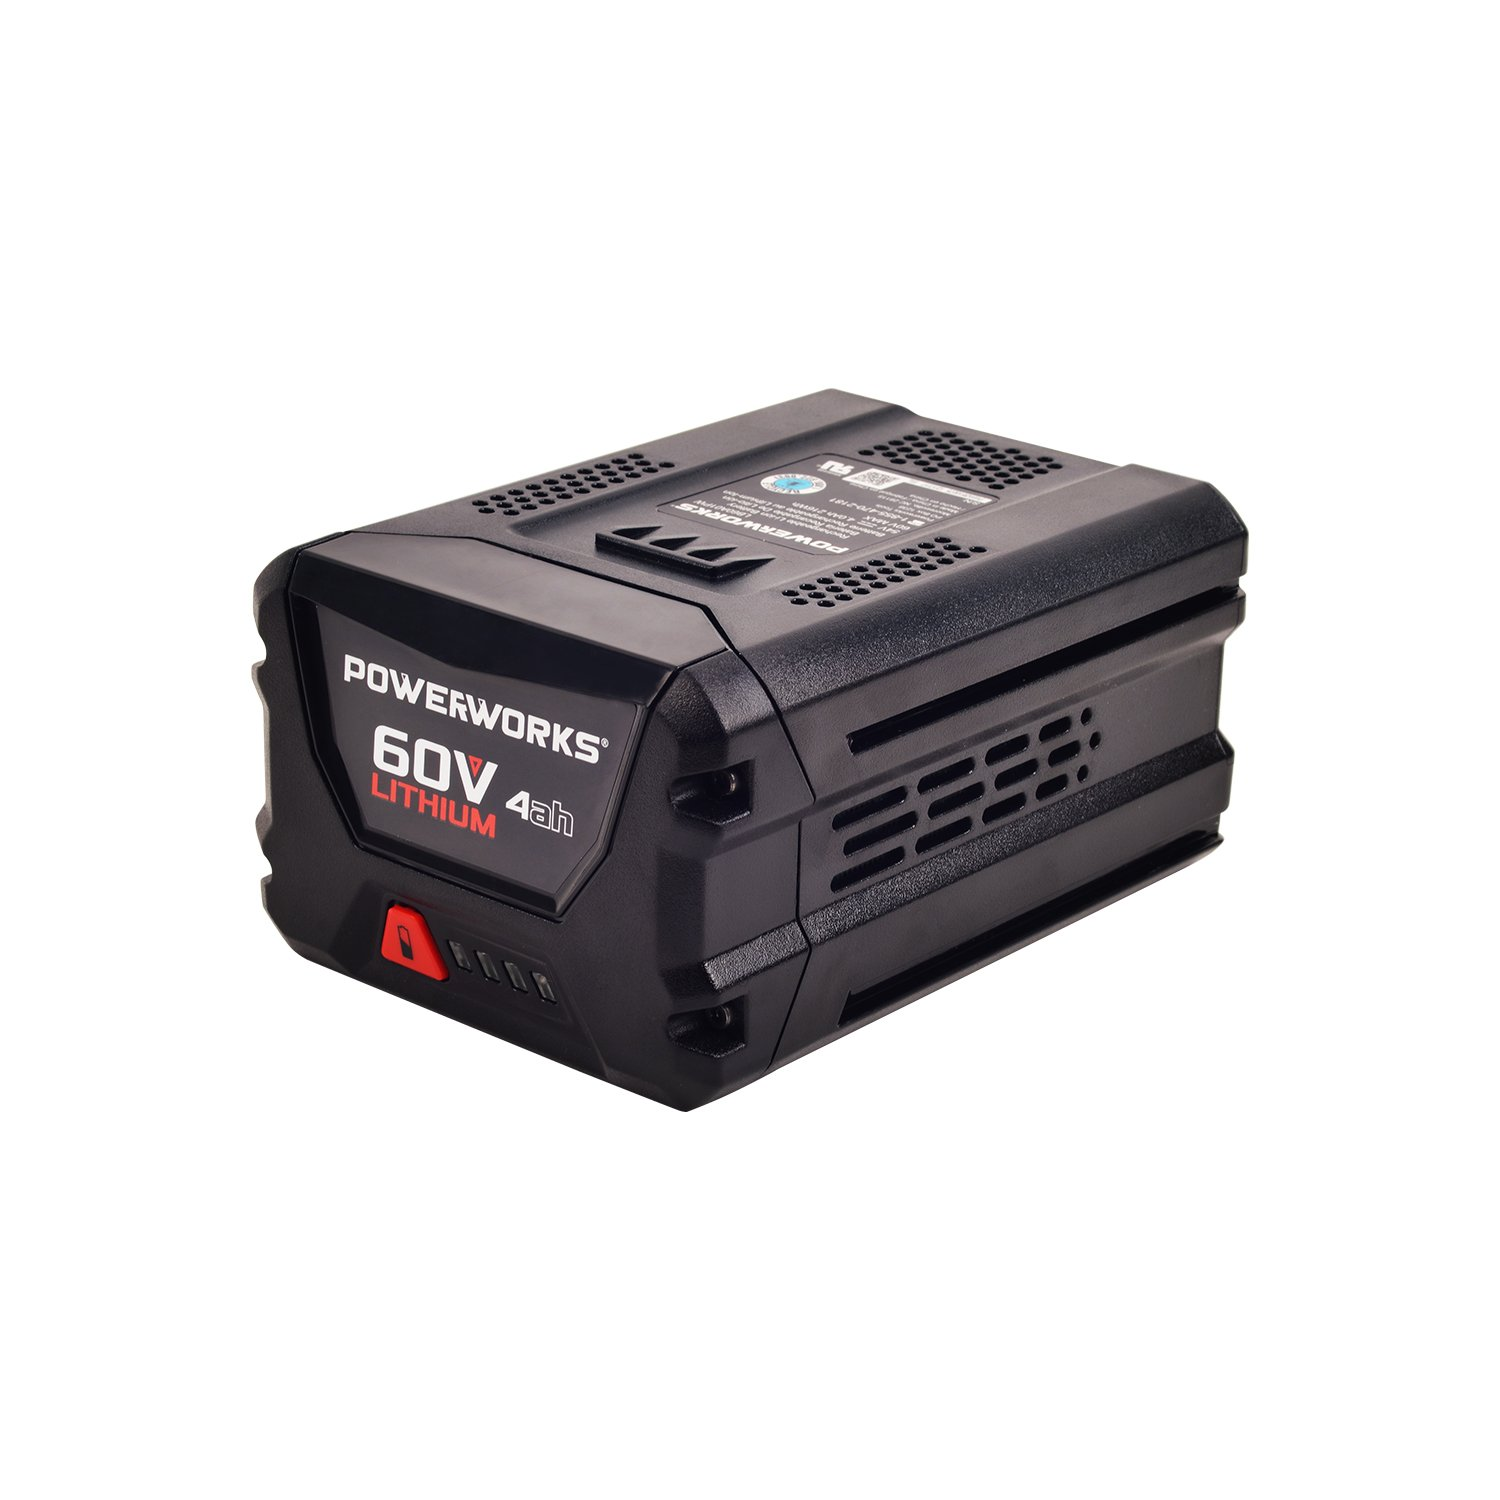 Works Power Powerworks 60V 4Ah Battery LB60A01PW